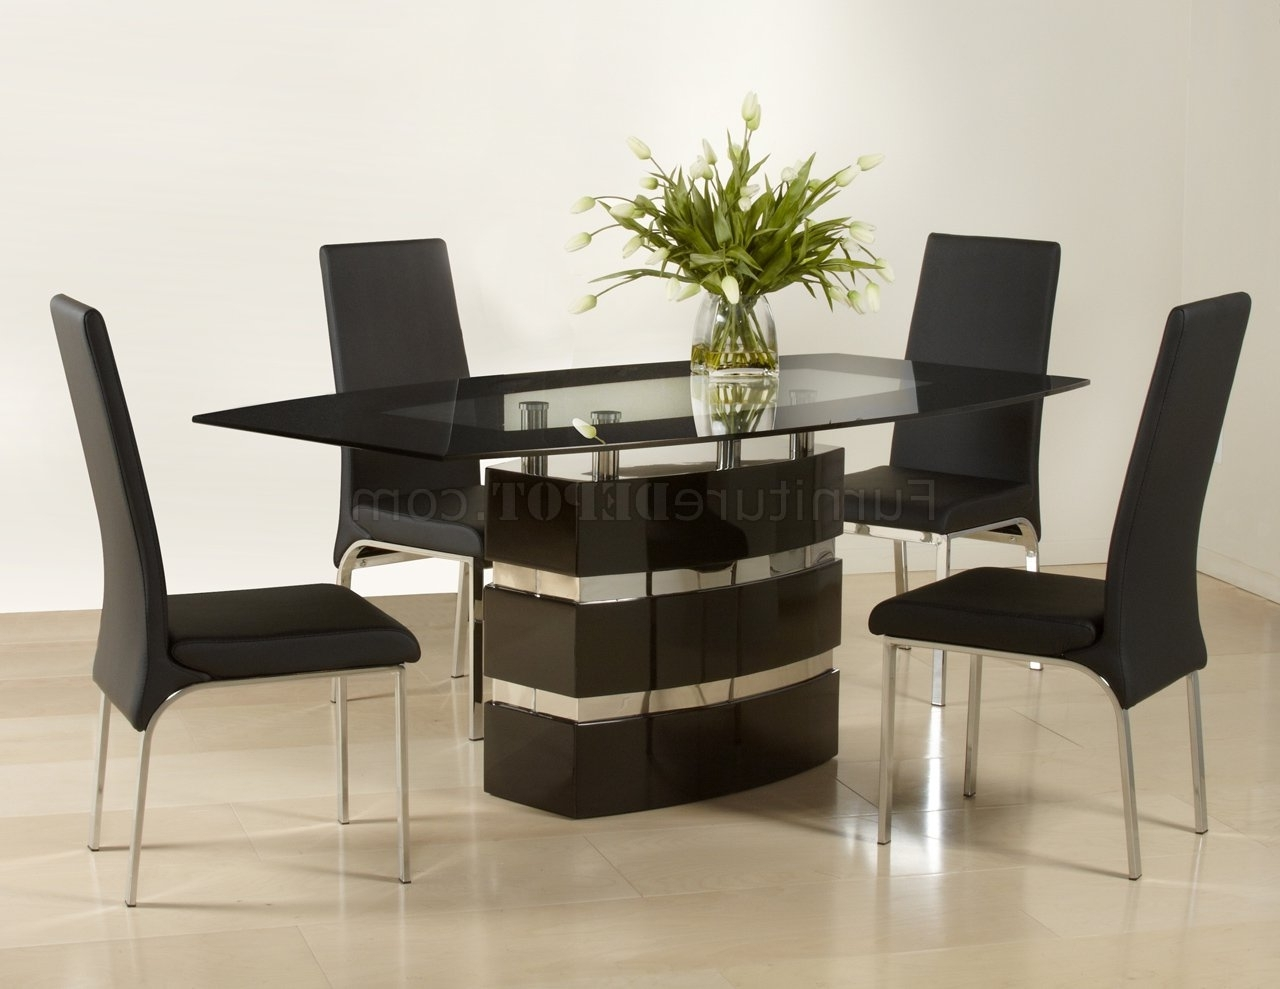 Famous Black High Gloss Finish Modern Dining Table W/optional Chairs Throughout Modern Dining Table And Chairs (View 6 of 25)